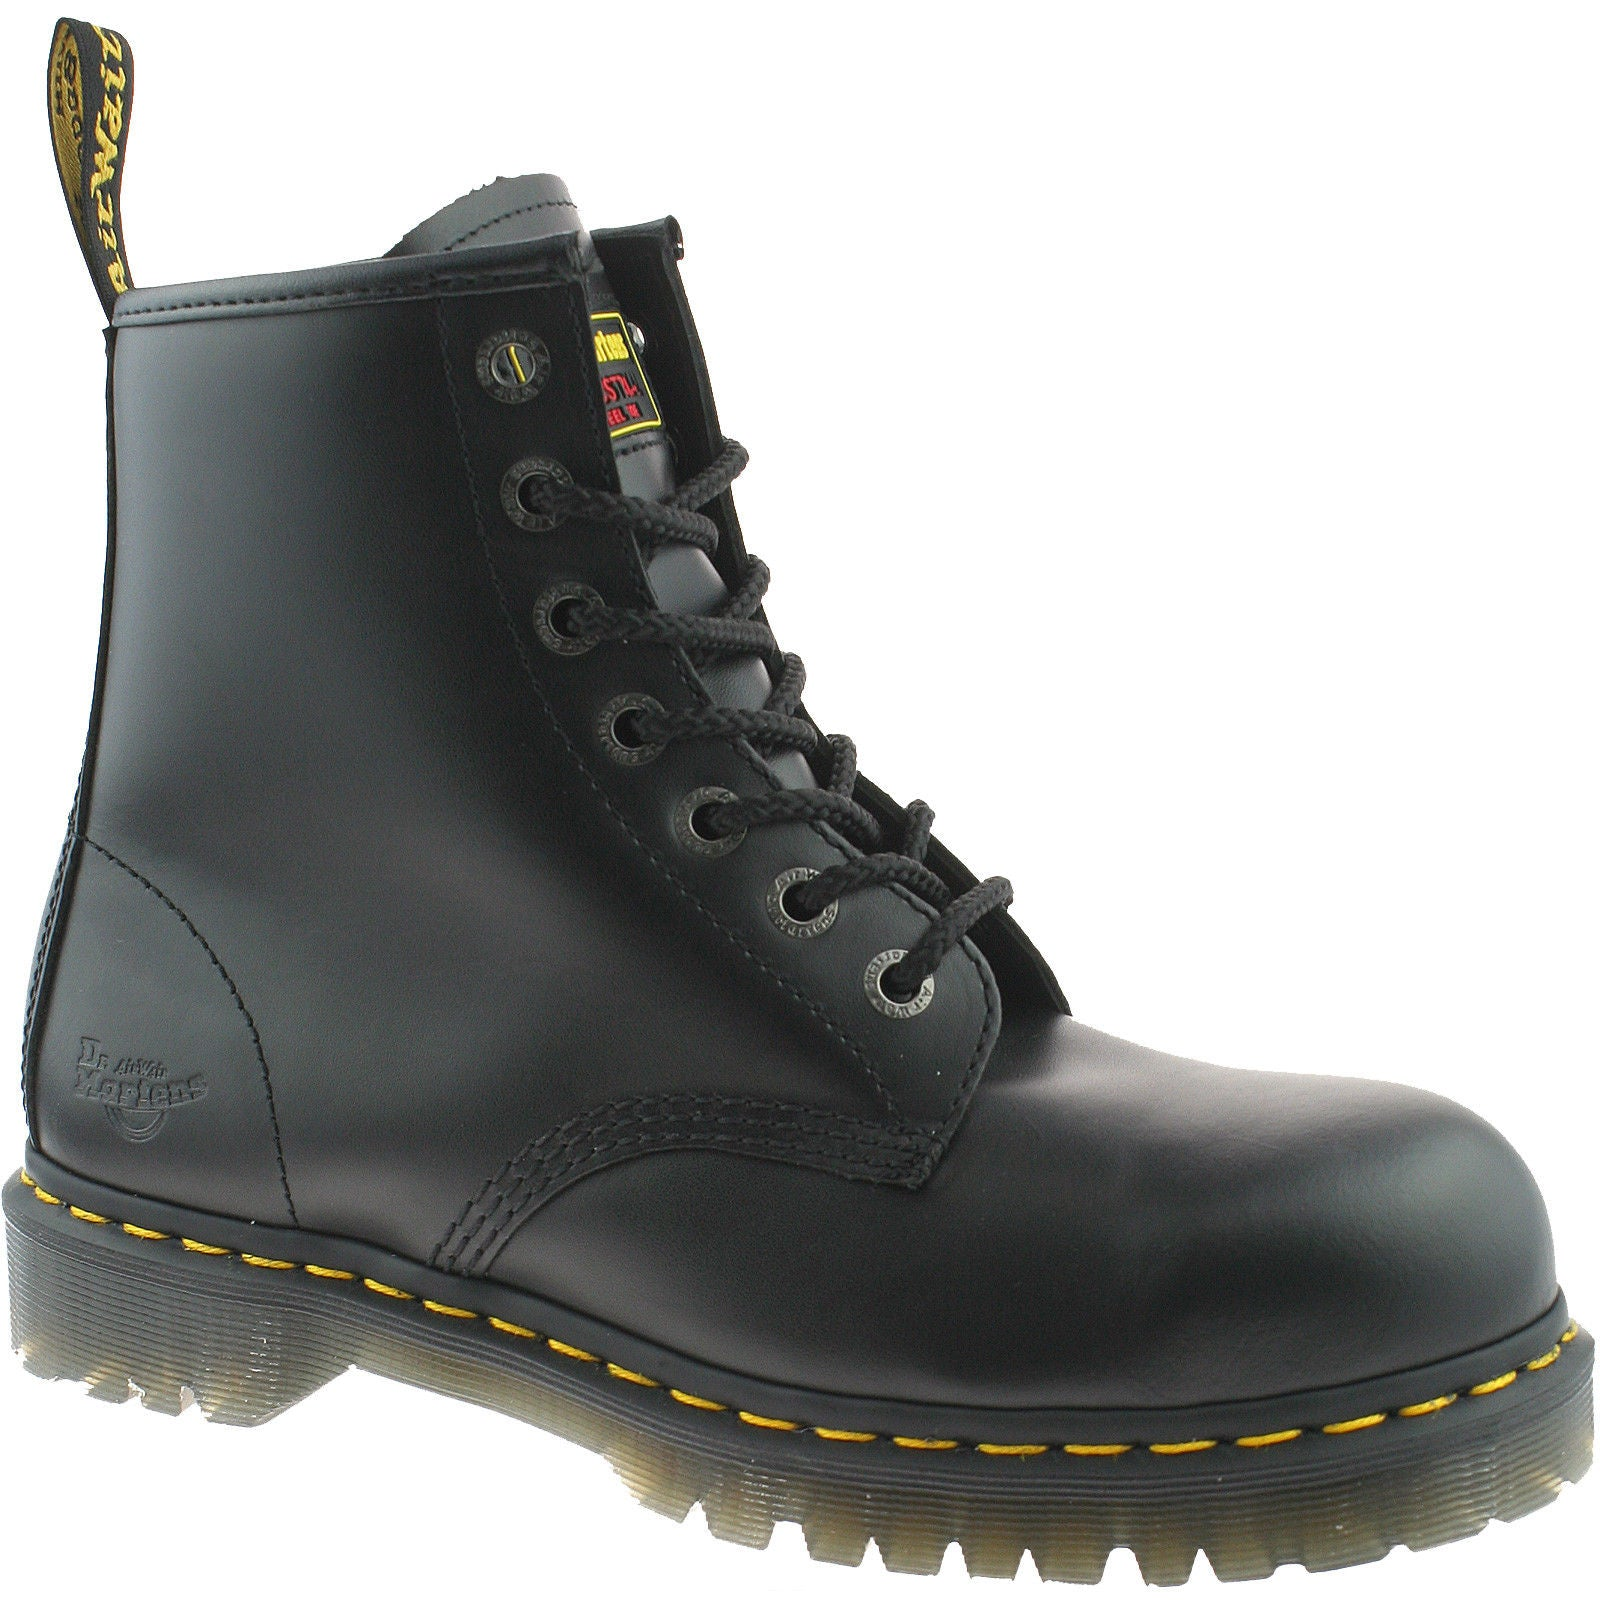 718eb827f8cc3 DR MARTENS MENS BLACK SAFETY WORK STEEL TOE CAP ICON 7B10 BOOTS - Top brand  shoes